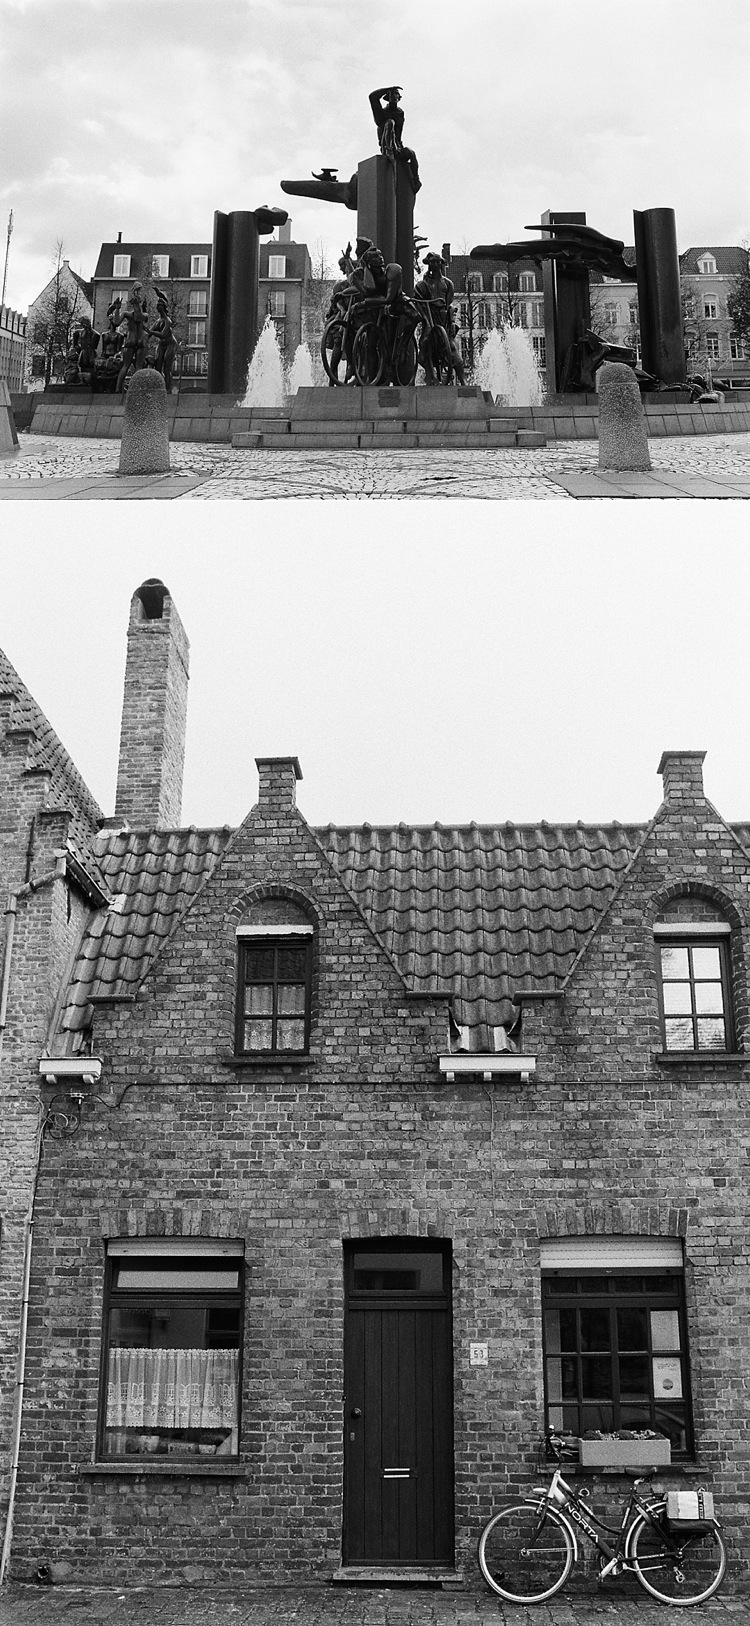 bruges kodak tri-x 400 black and white film travel photography london lily sawyer photo